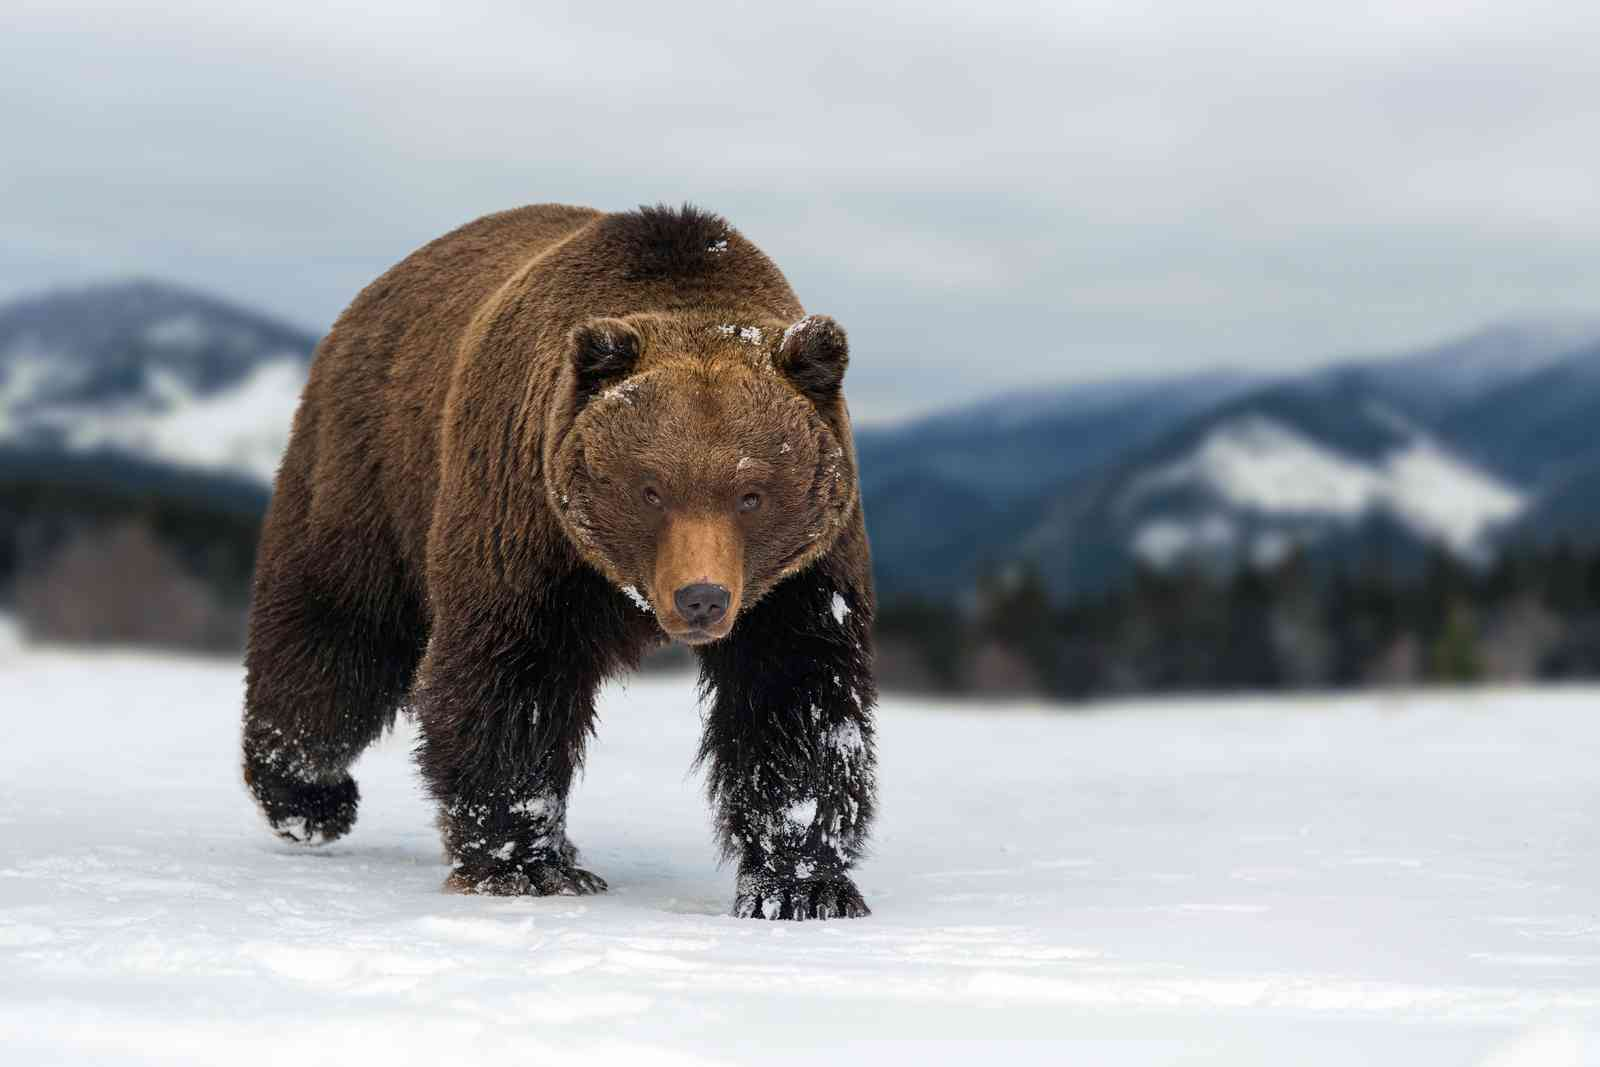 A grizzly bear in the snow (Shutterstock)